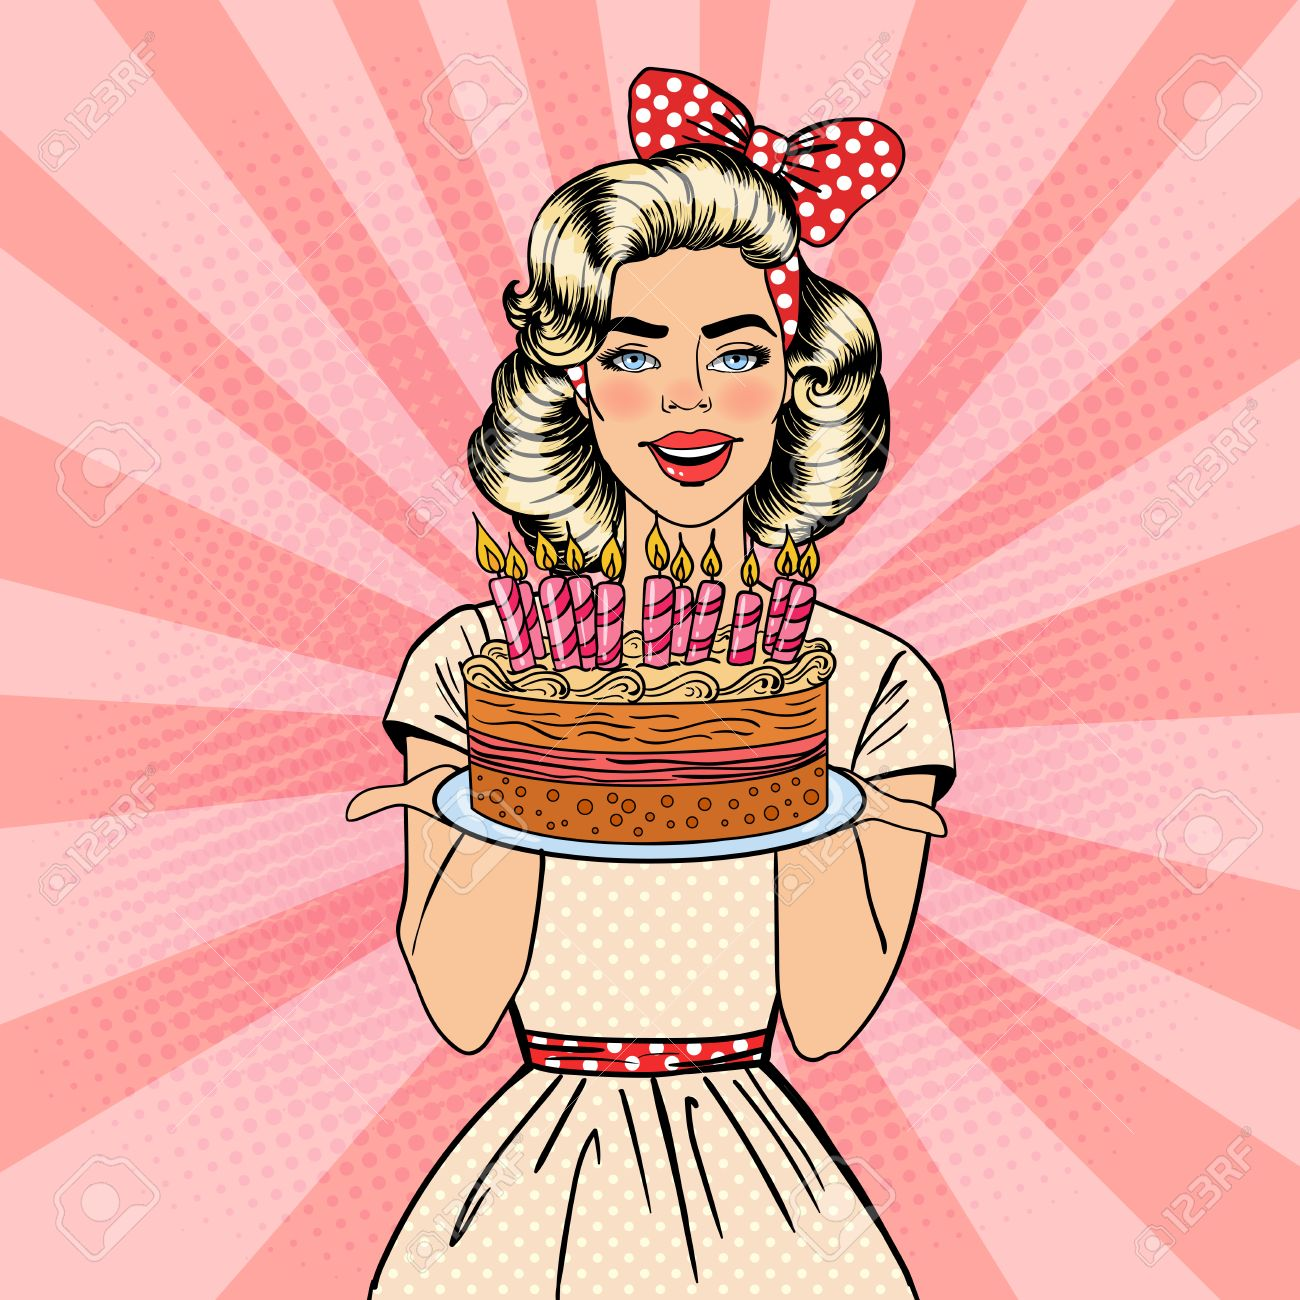 Pop Art Beautiful Woman Holding A Plate With Happy Birthday Cake Candles Vector Illustration